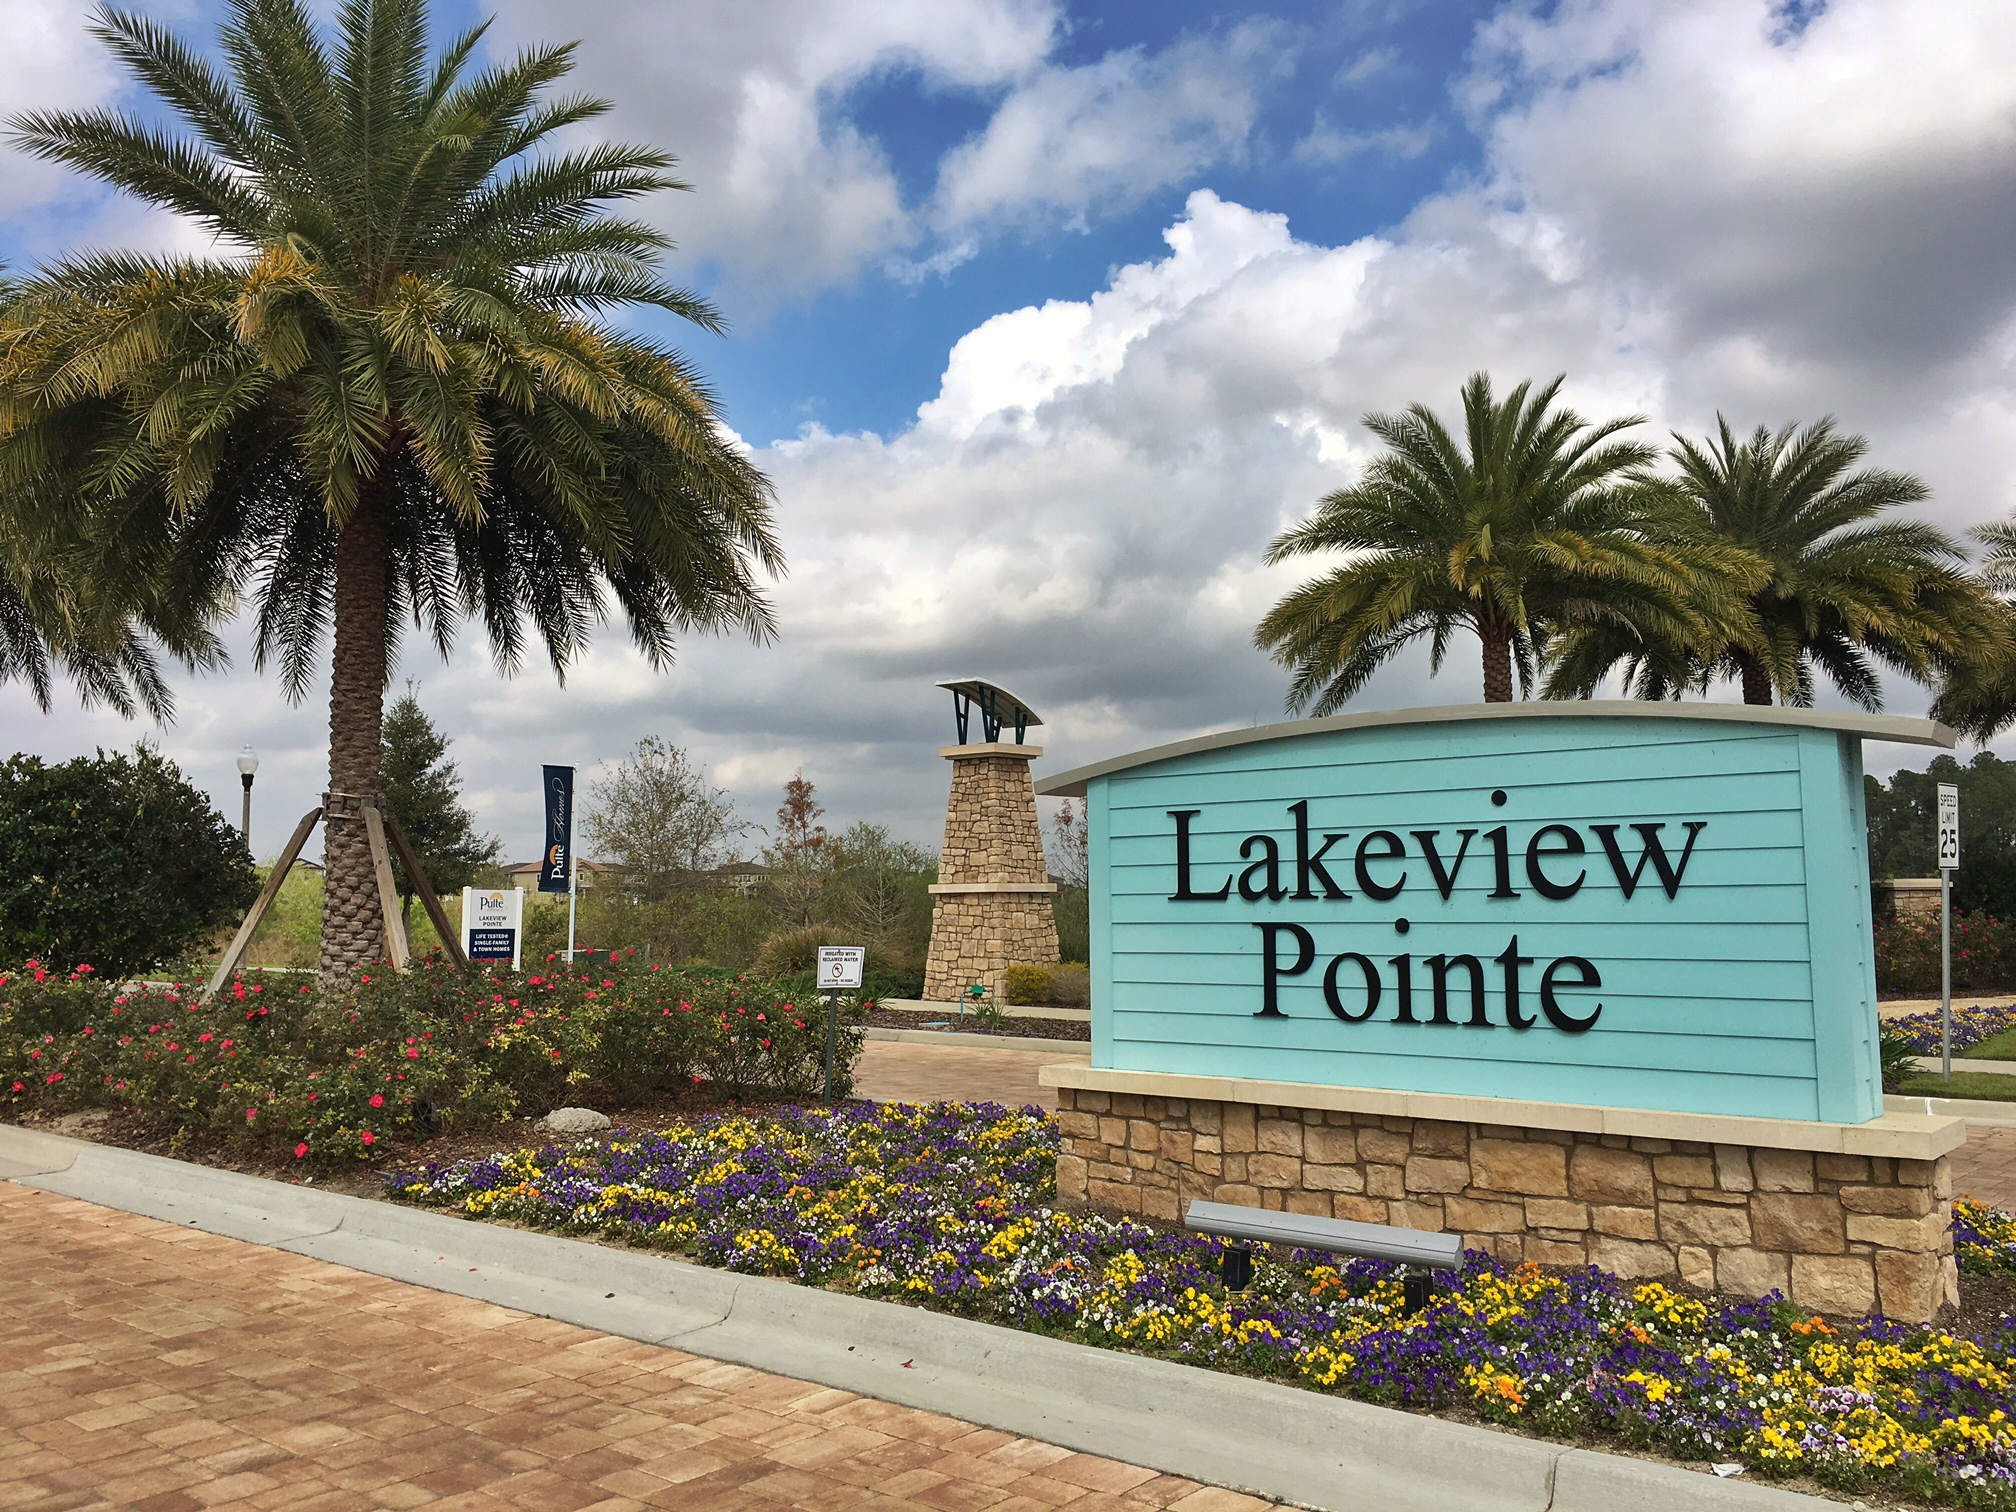 Search all homes for sale in lakeview pointe winter garden 34787 for Land for sale in winter garden fl